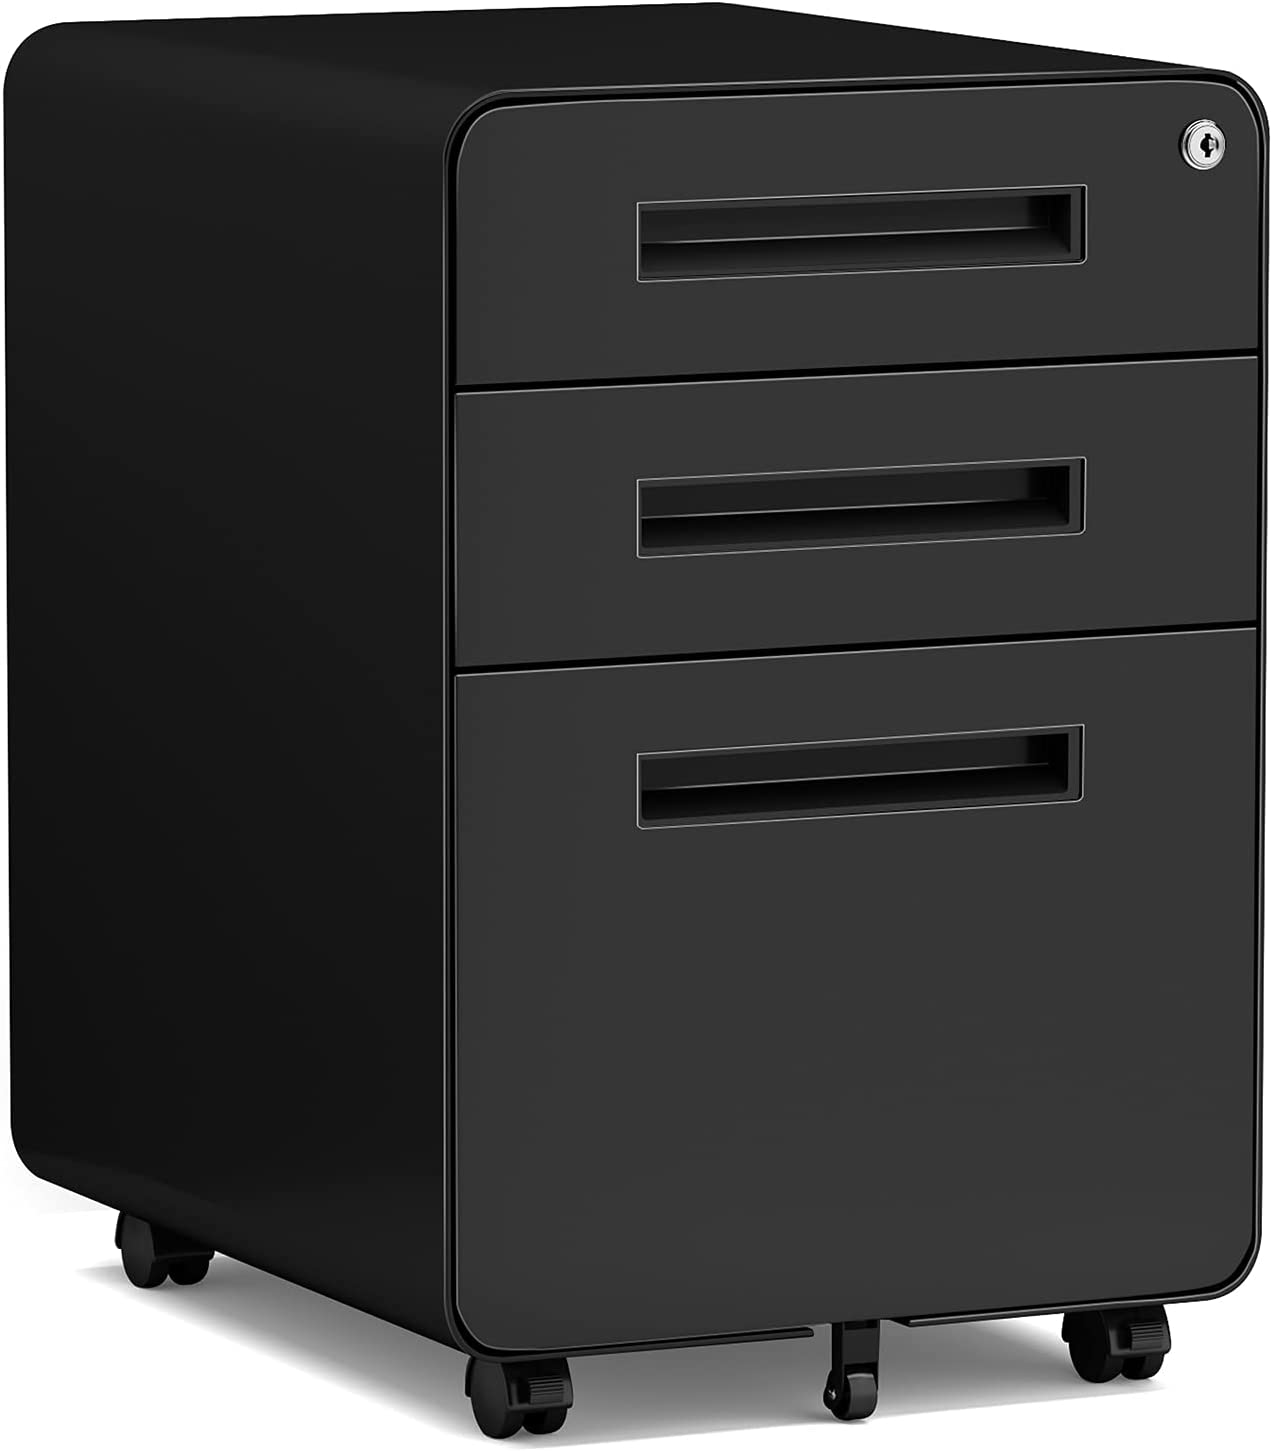 File Cabinet 3 Drawers, Mobile Filing Cabinet with Lock, Rolling File Cabinet with Keys Under Desk, Modern Black File Cabinet for Home Office with Anti-tilt Wheels, A4/Letter/Legal Size